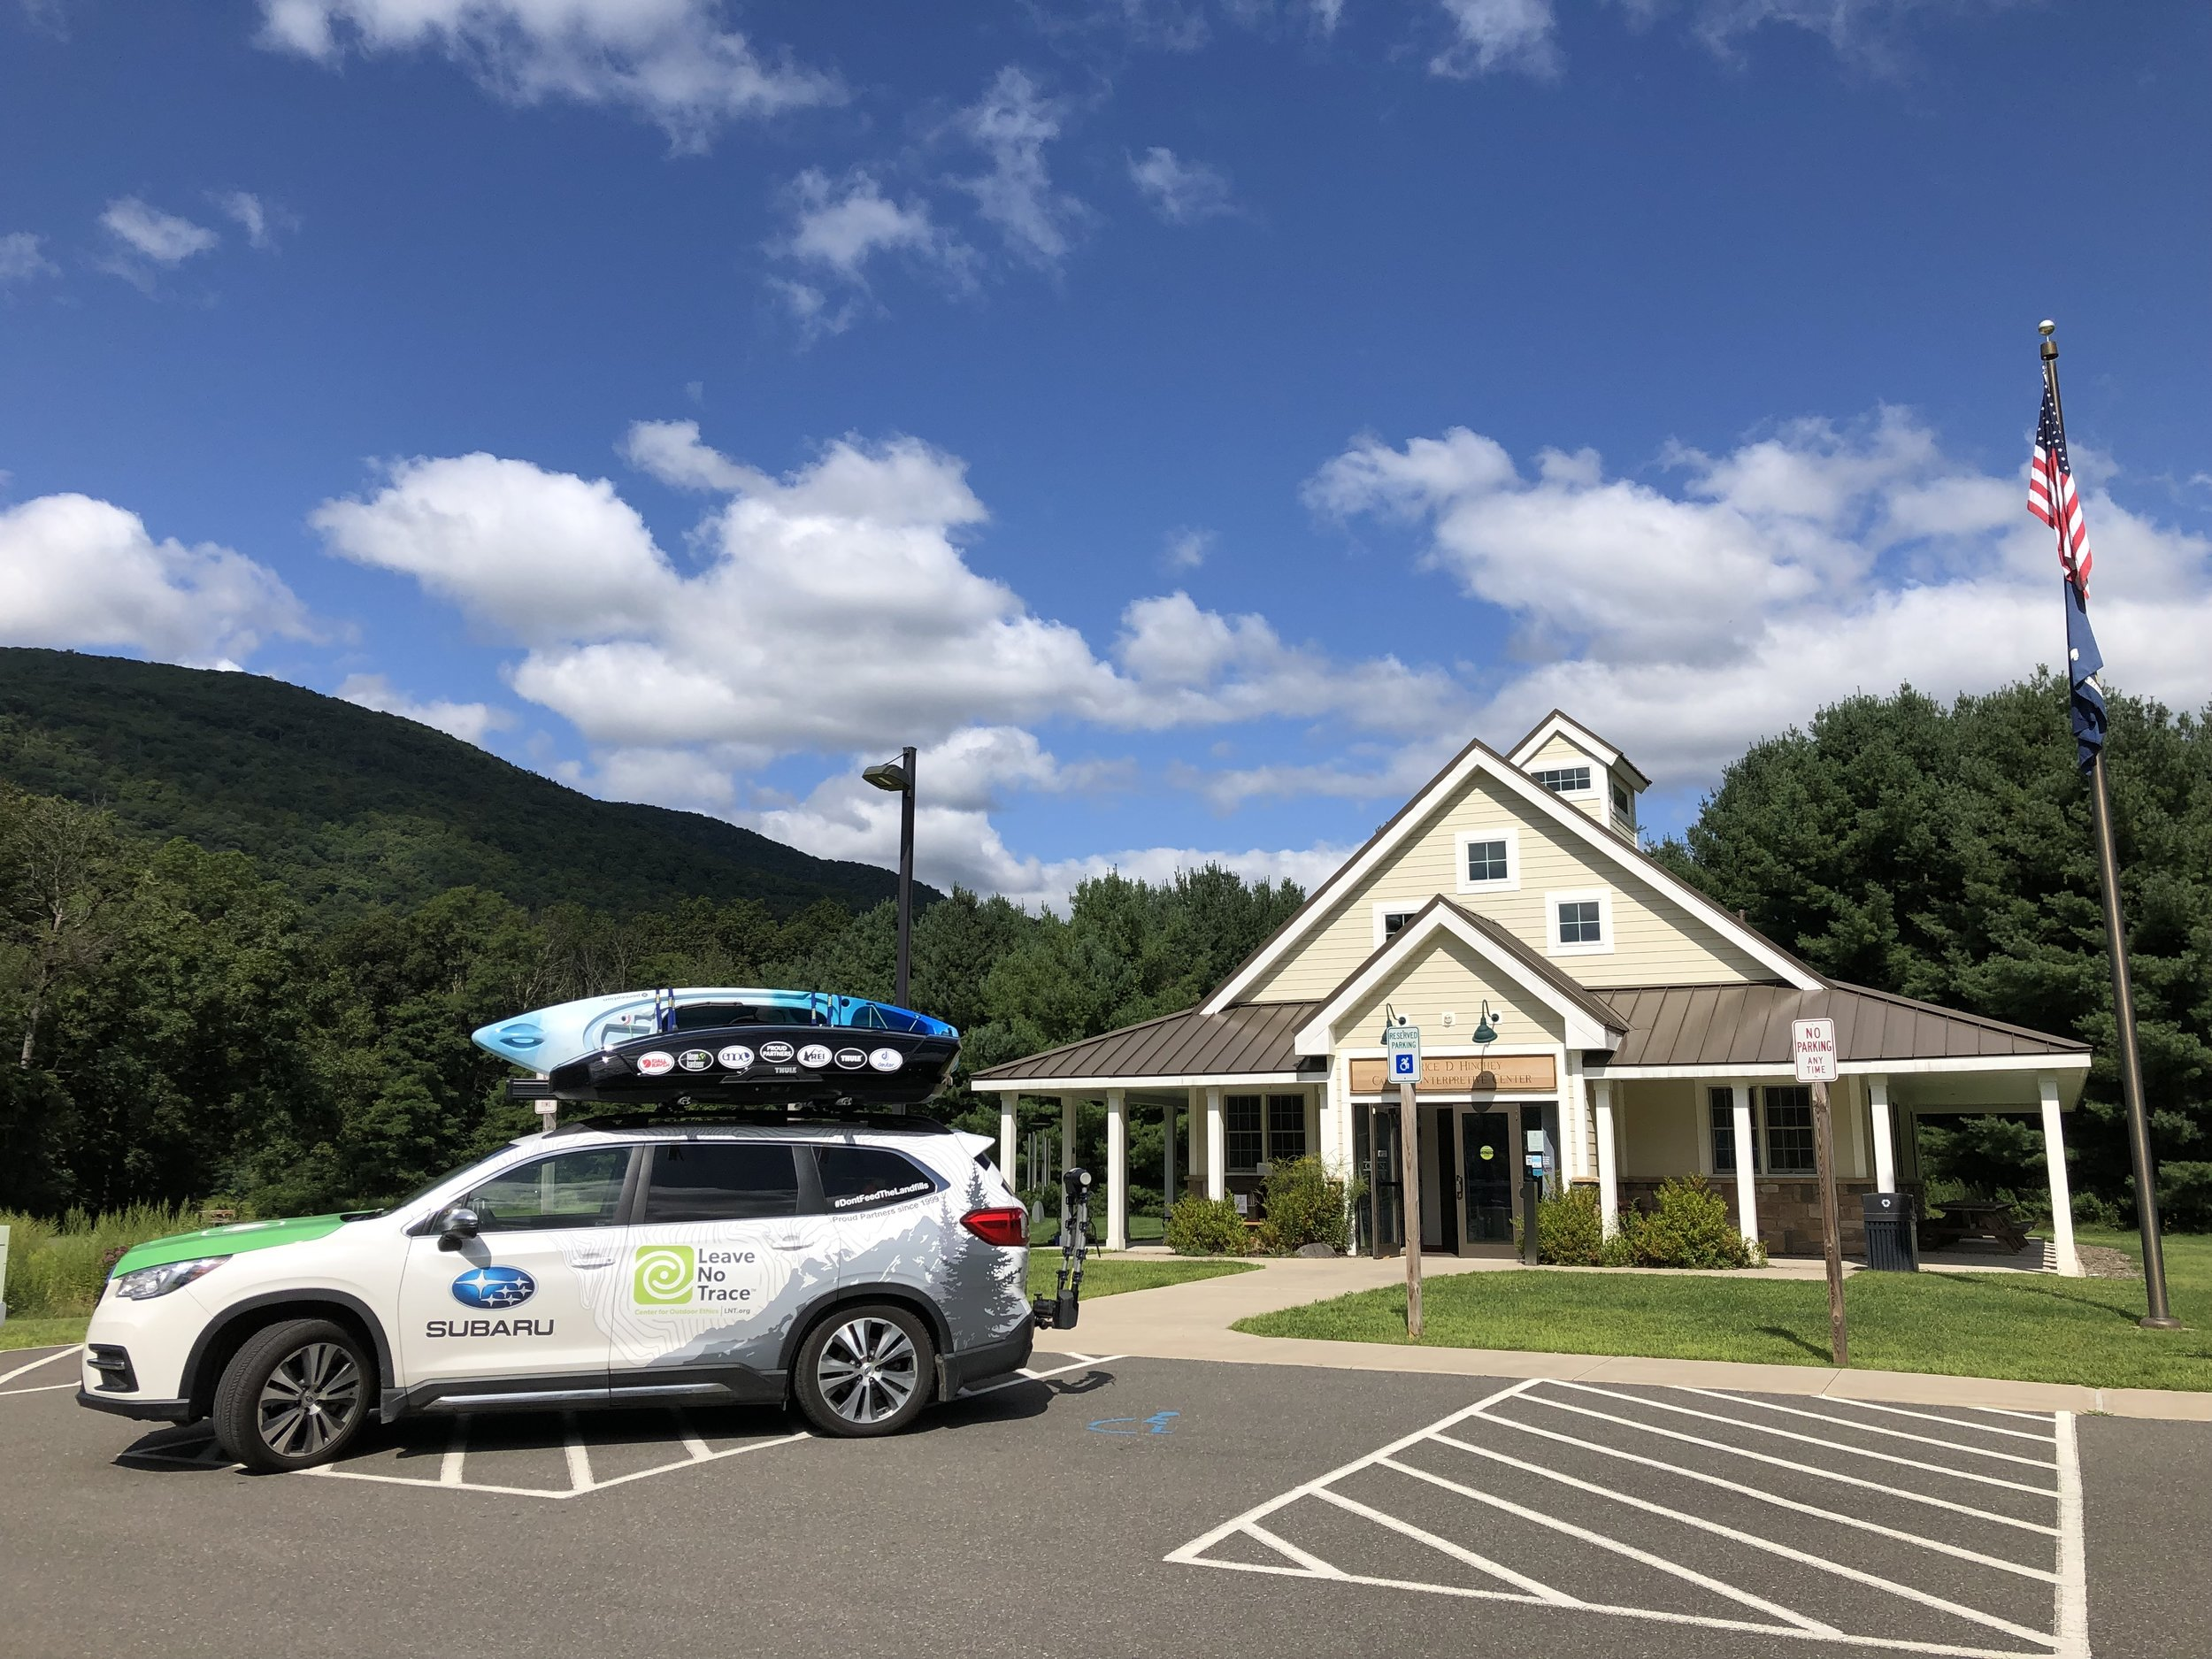 The Subaru/Leave No Trace Traveling Trainers came to the Catskills last week to promote responsible recreation throughout the Catskills.